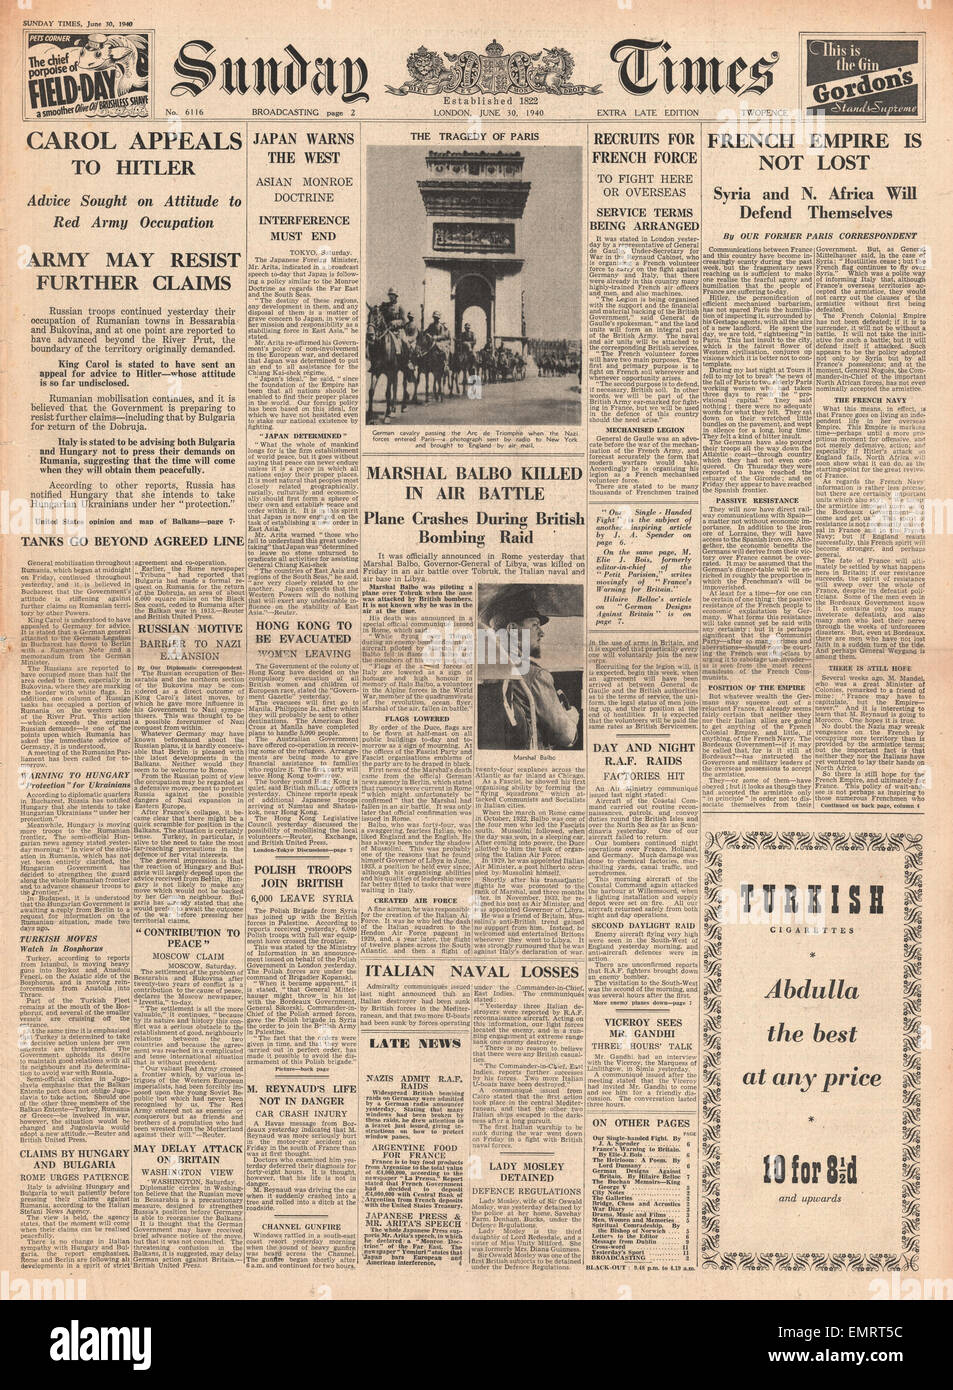 1940 front page Sunday Times King Carol appeals to Hitler